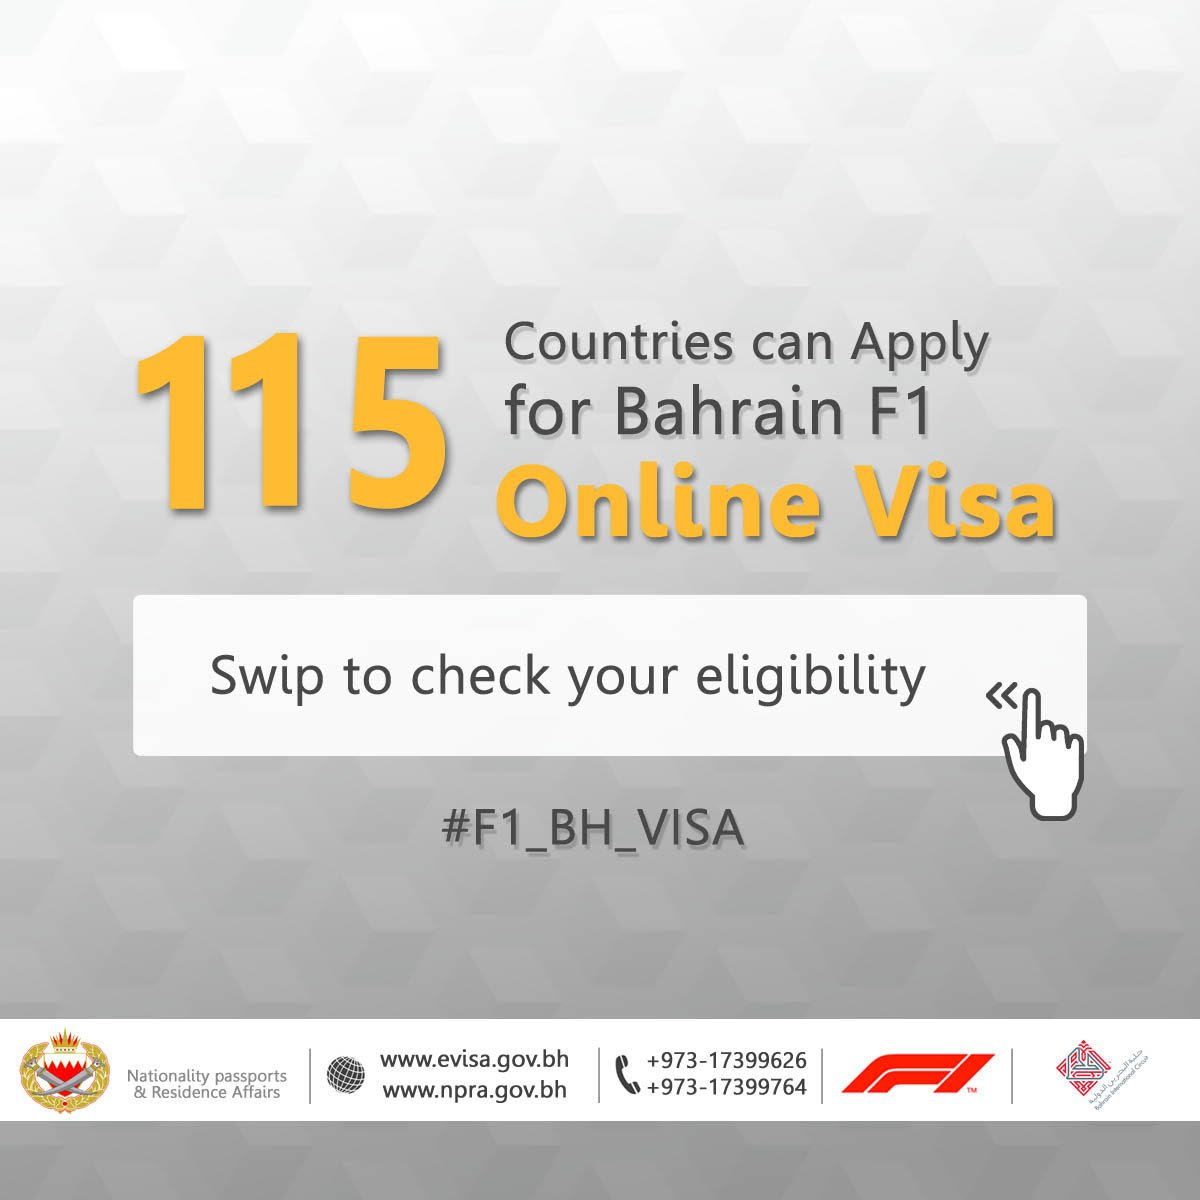 Ministry Of Interior Pa Twitter 115 Countries Have The Opportunity To Apply For F1 Evisa Directly Scan The Qr Code Or Visit The Https T Co Fjdjotxymb To Check The List Https T Co 6zto3ulzkq